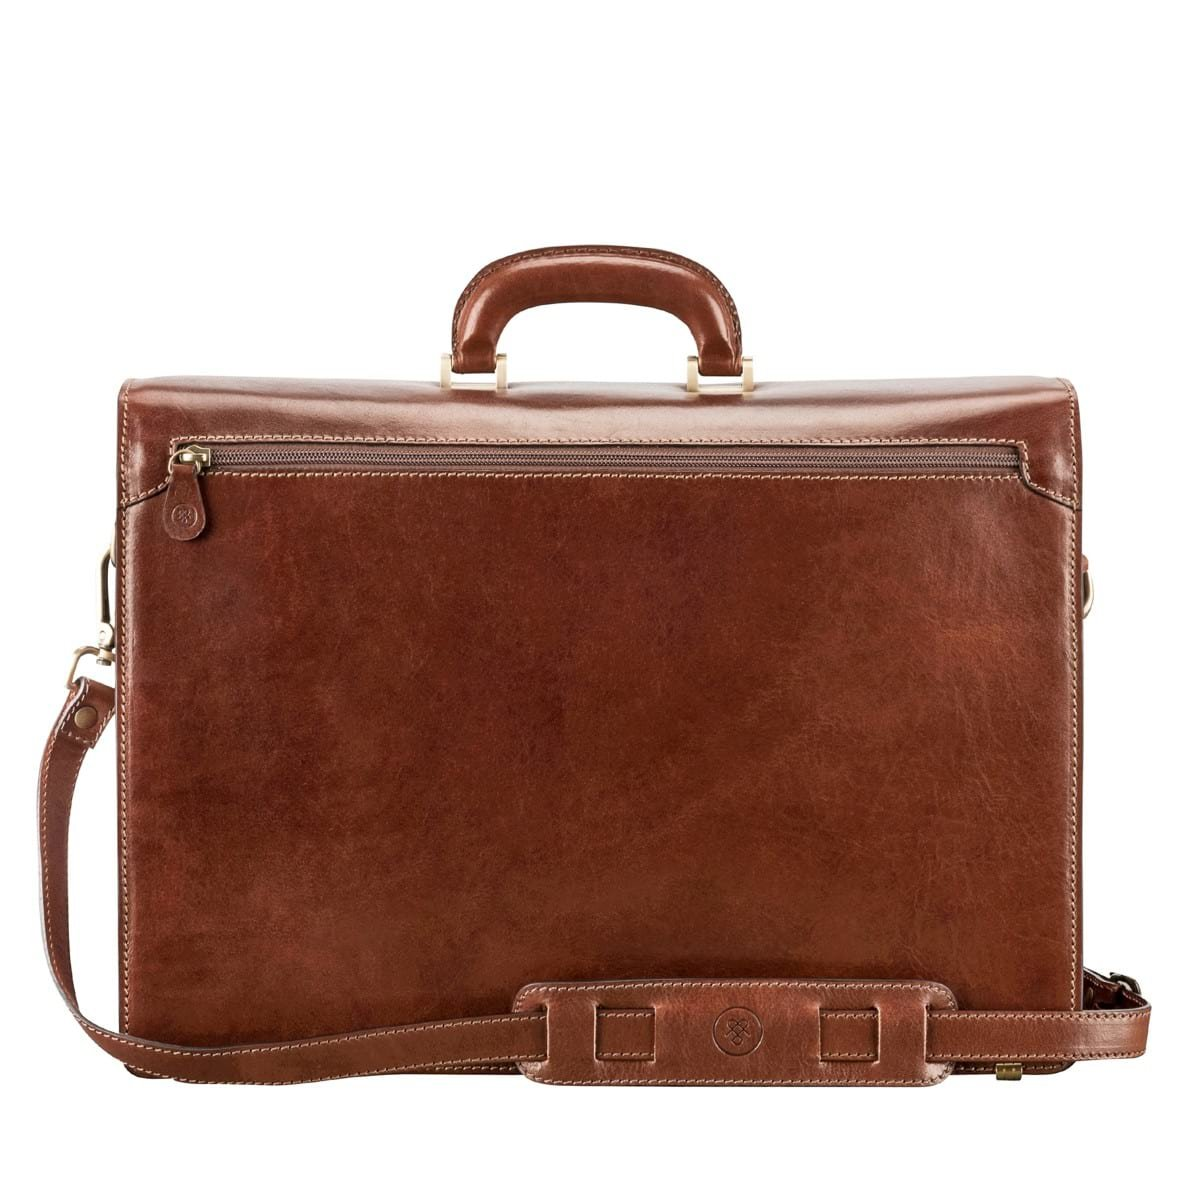 Maxwell Scott Personalized Luxury Tan Large Briefcase (The Tomacelli 3 section) by Maxwell Scott Bags (Image #6)